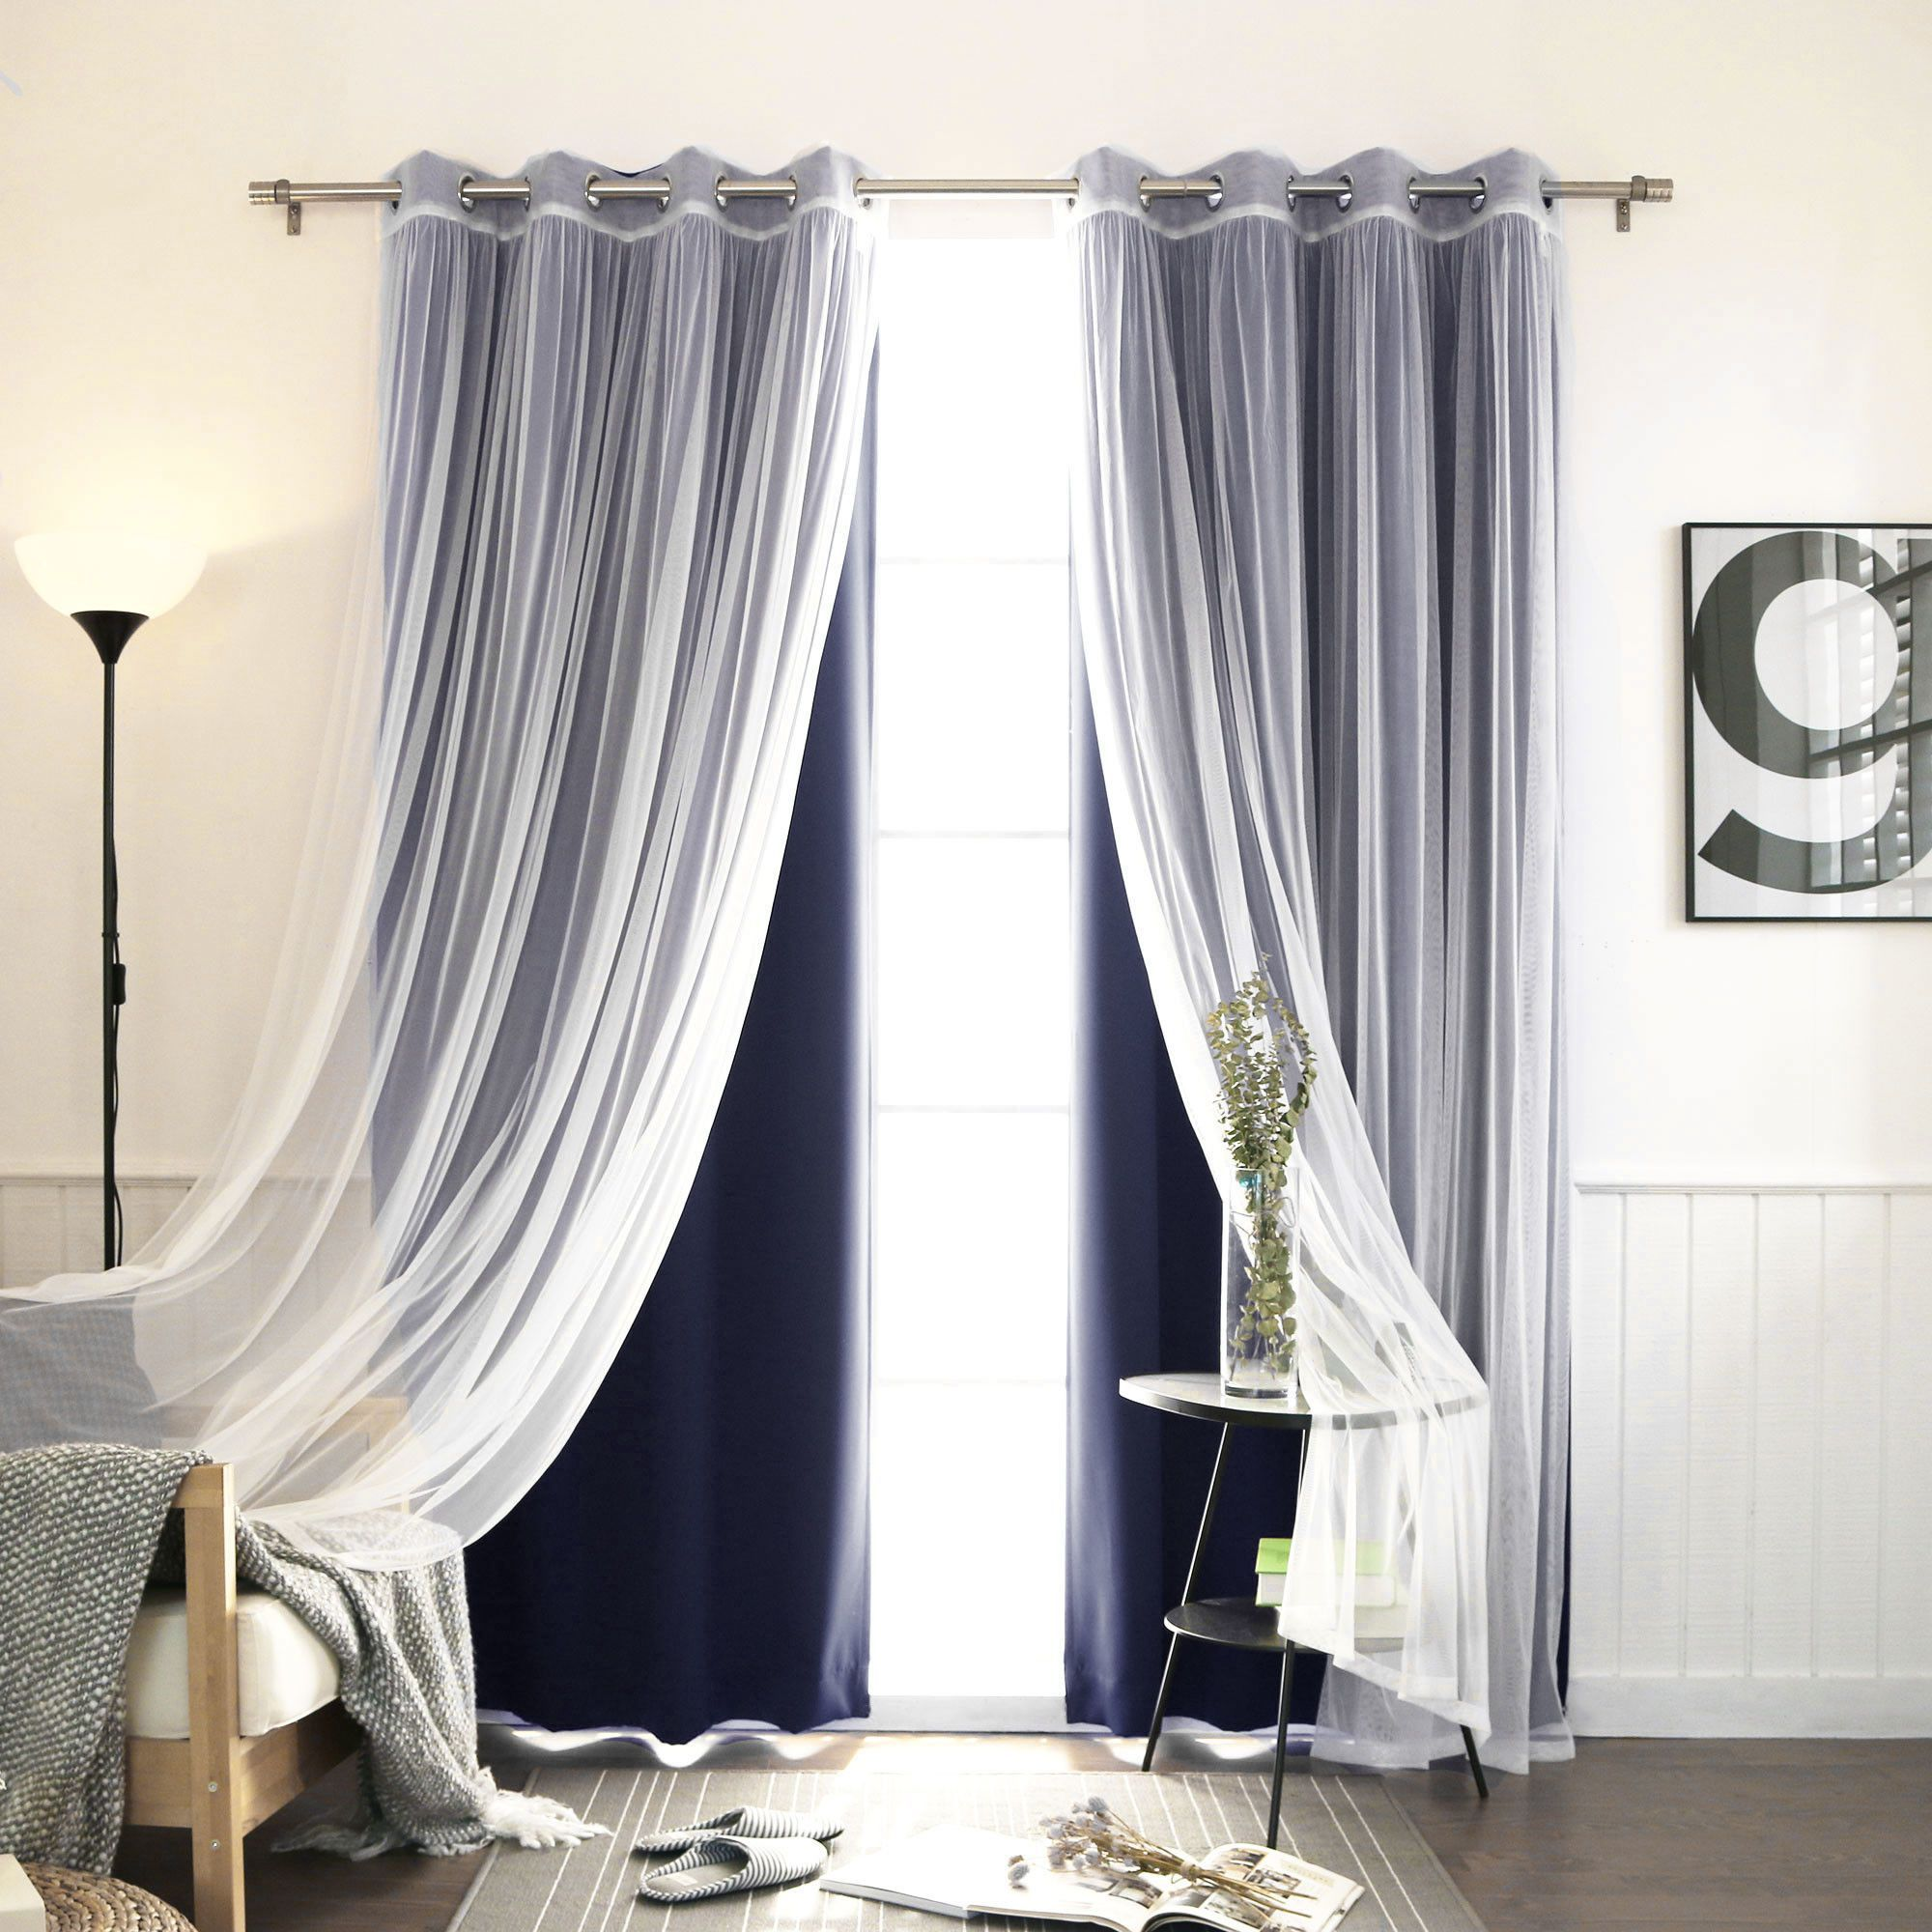 Features Set Includes 2 Blackout Curtain Panels And 2 White Sheer Curtain Panels Blackout Curtains Block Out 100 Uv Rays And Up To 99 커튼 디자인 인테리어